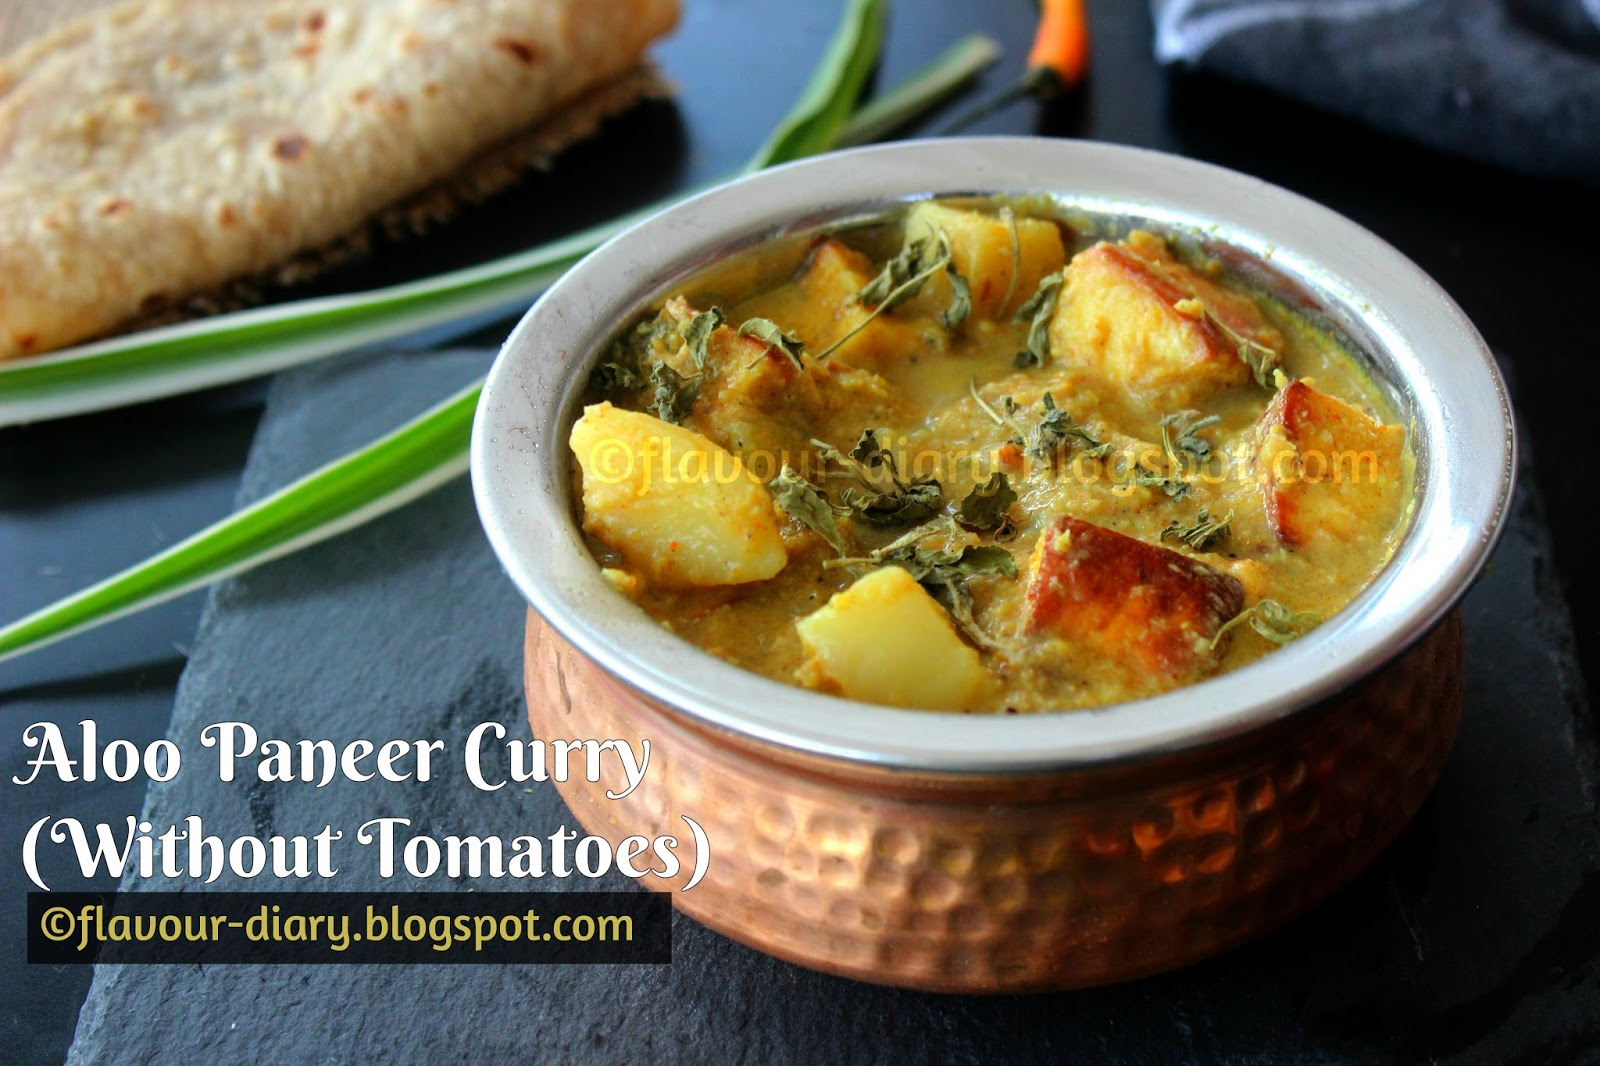 Aloo paneer curry without tomatoes recipe flavour diary indian aloo paneer curry without tomatoes recipe flavour diary indian vegetarian curry forumfinder Image collections